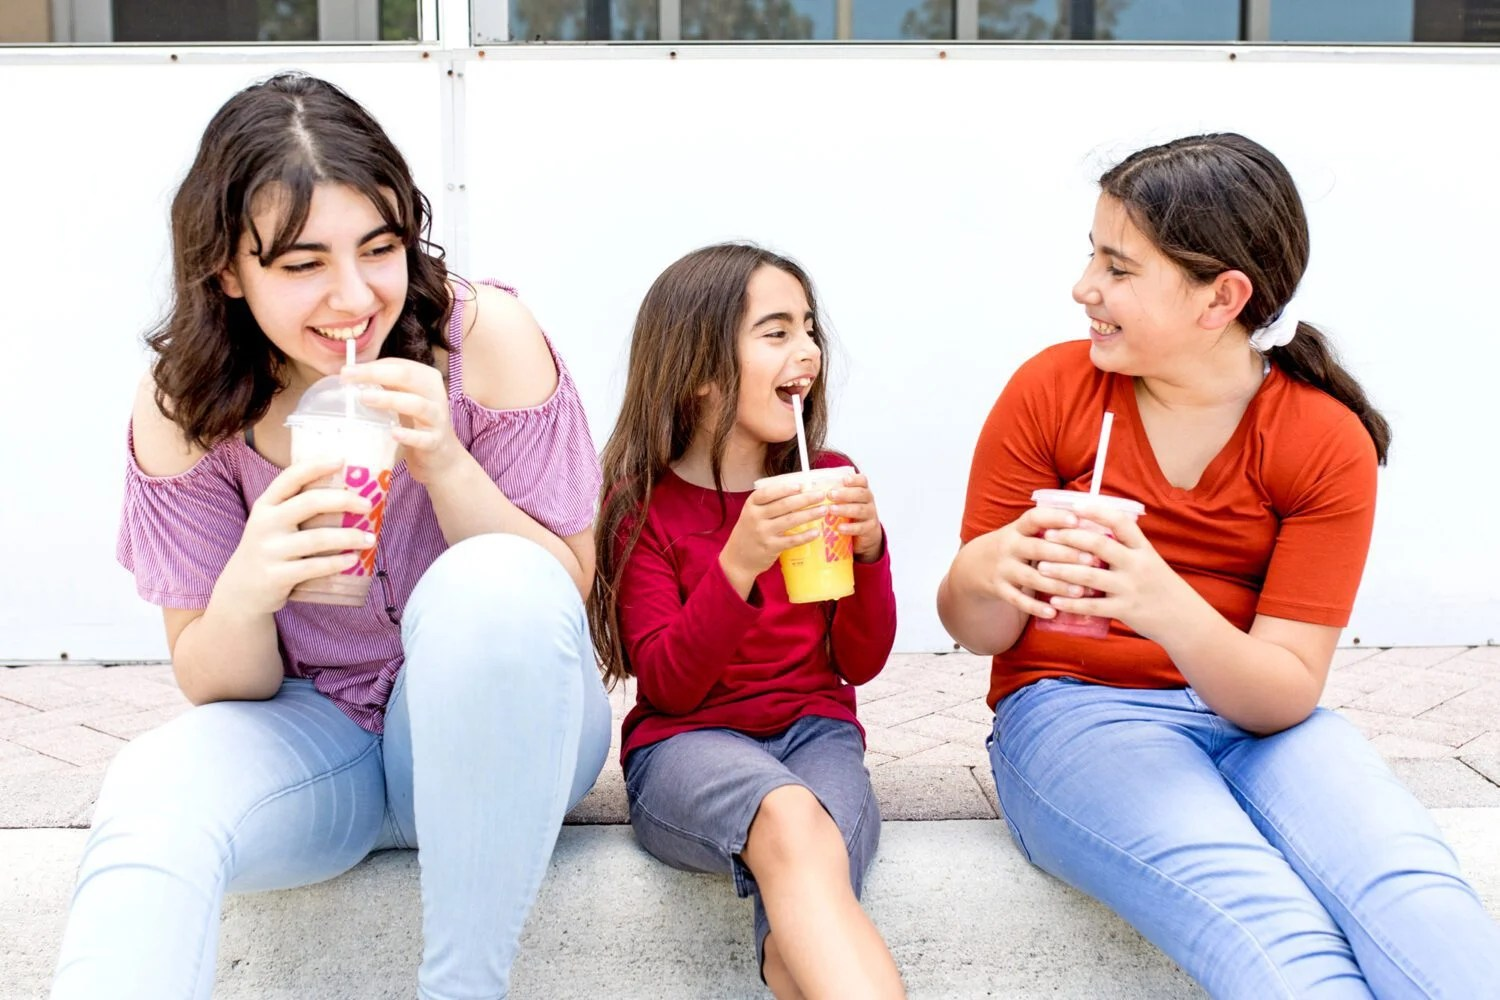 three girls laughing and enjoying a drink from dunkin